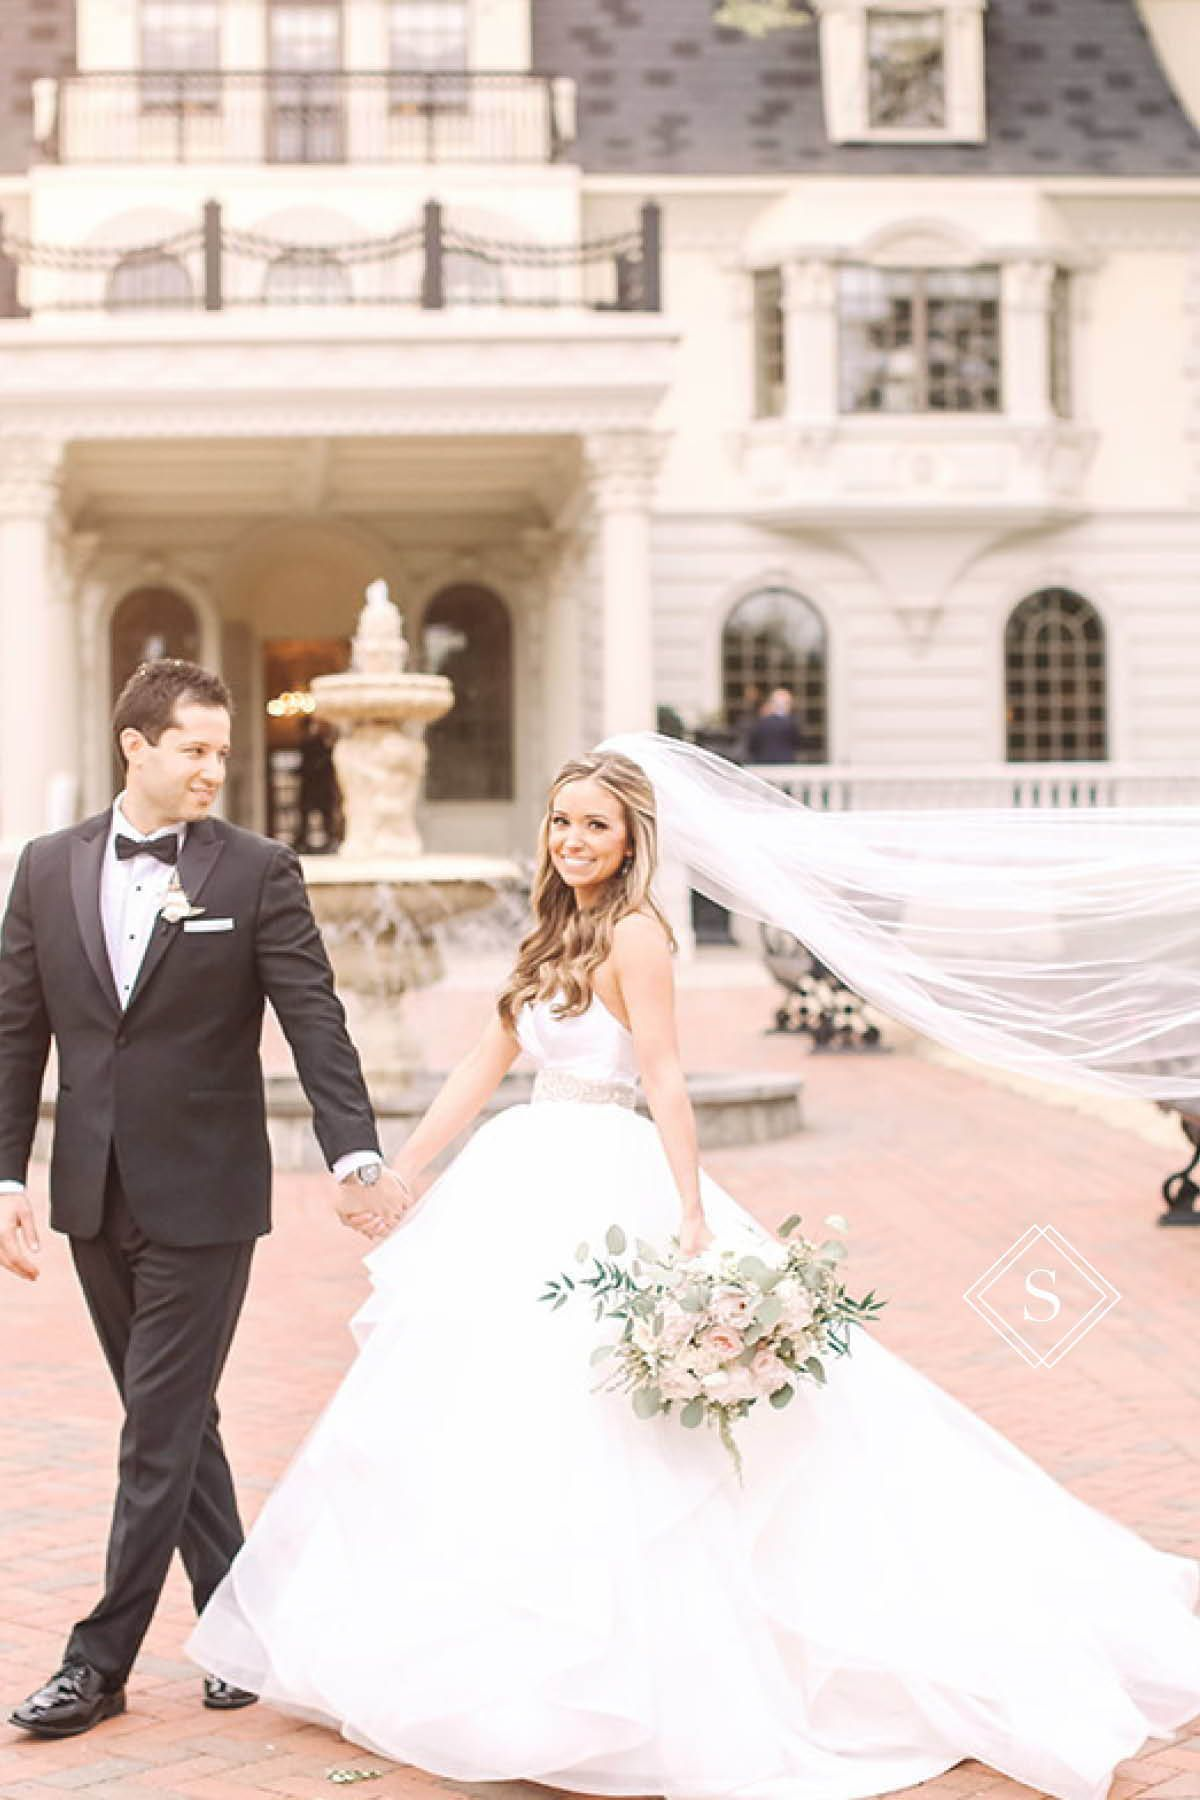 Top 20 Most Beautiful Wedding Venues in the US | Wedding ...